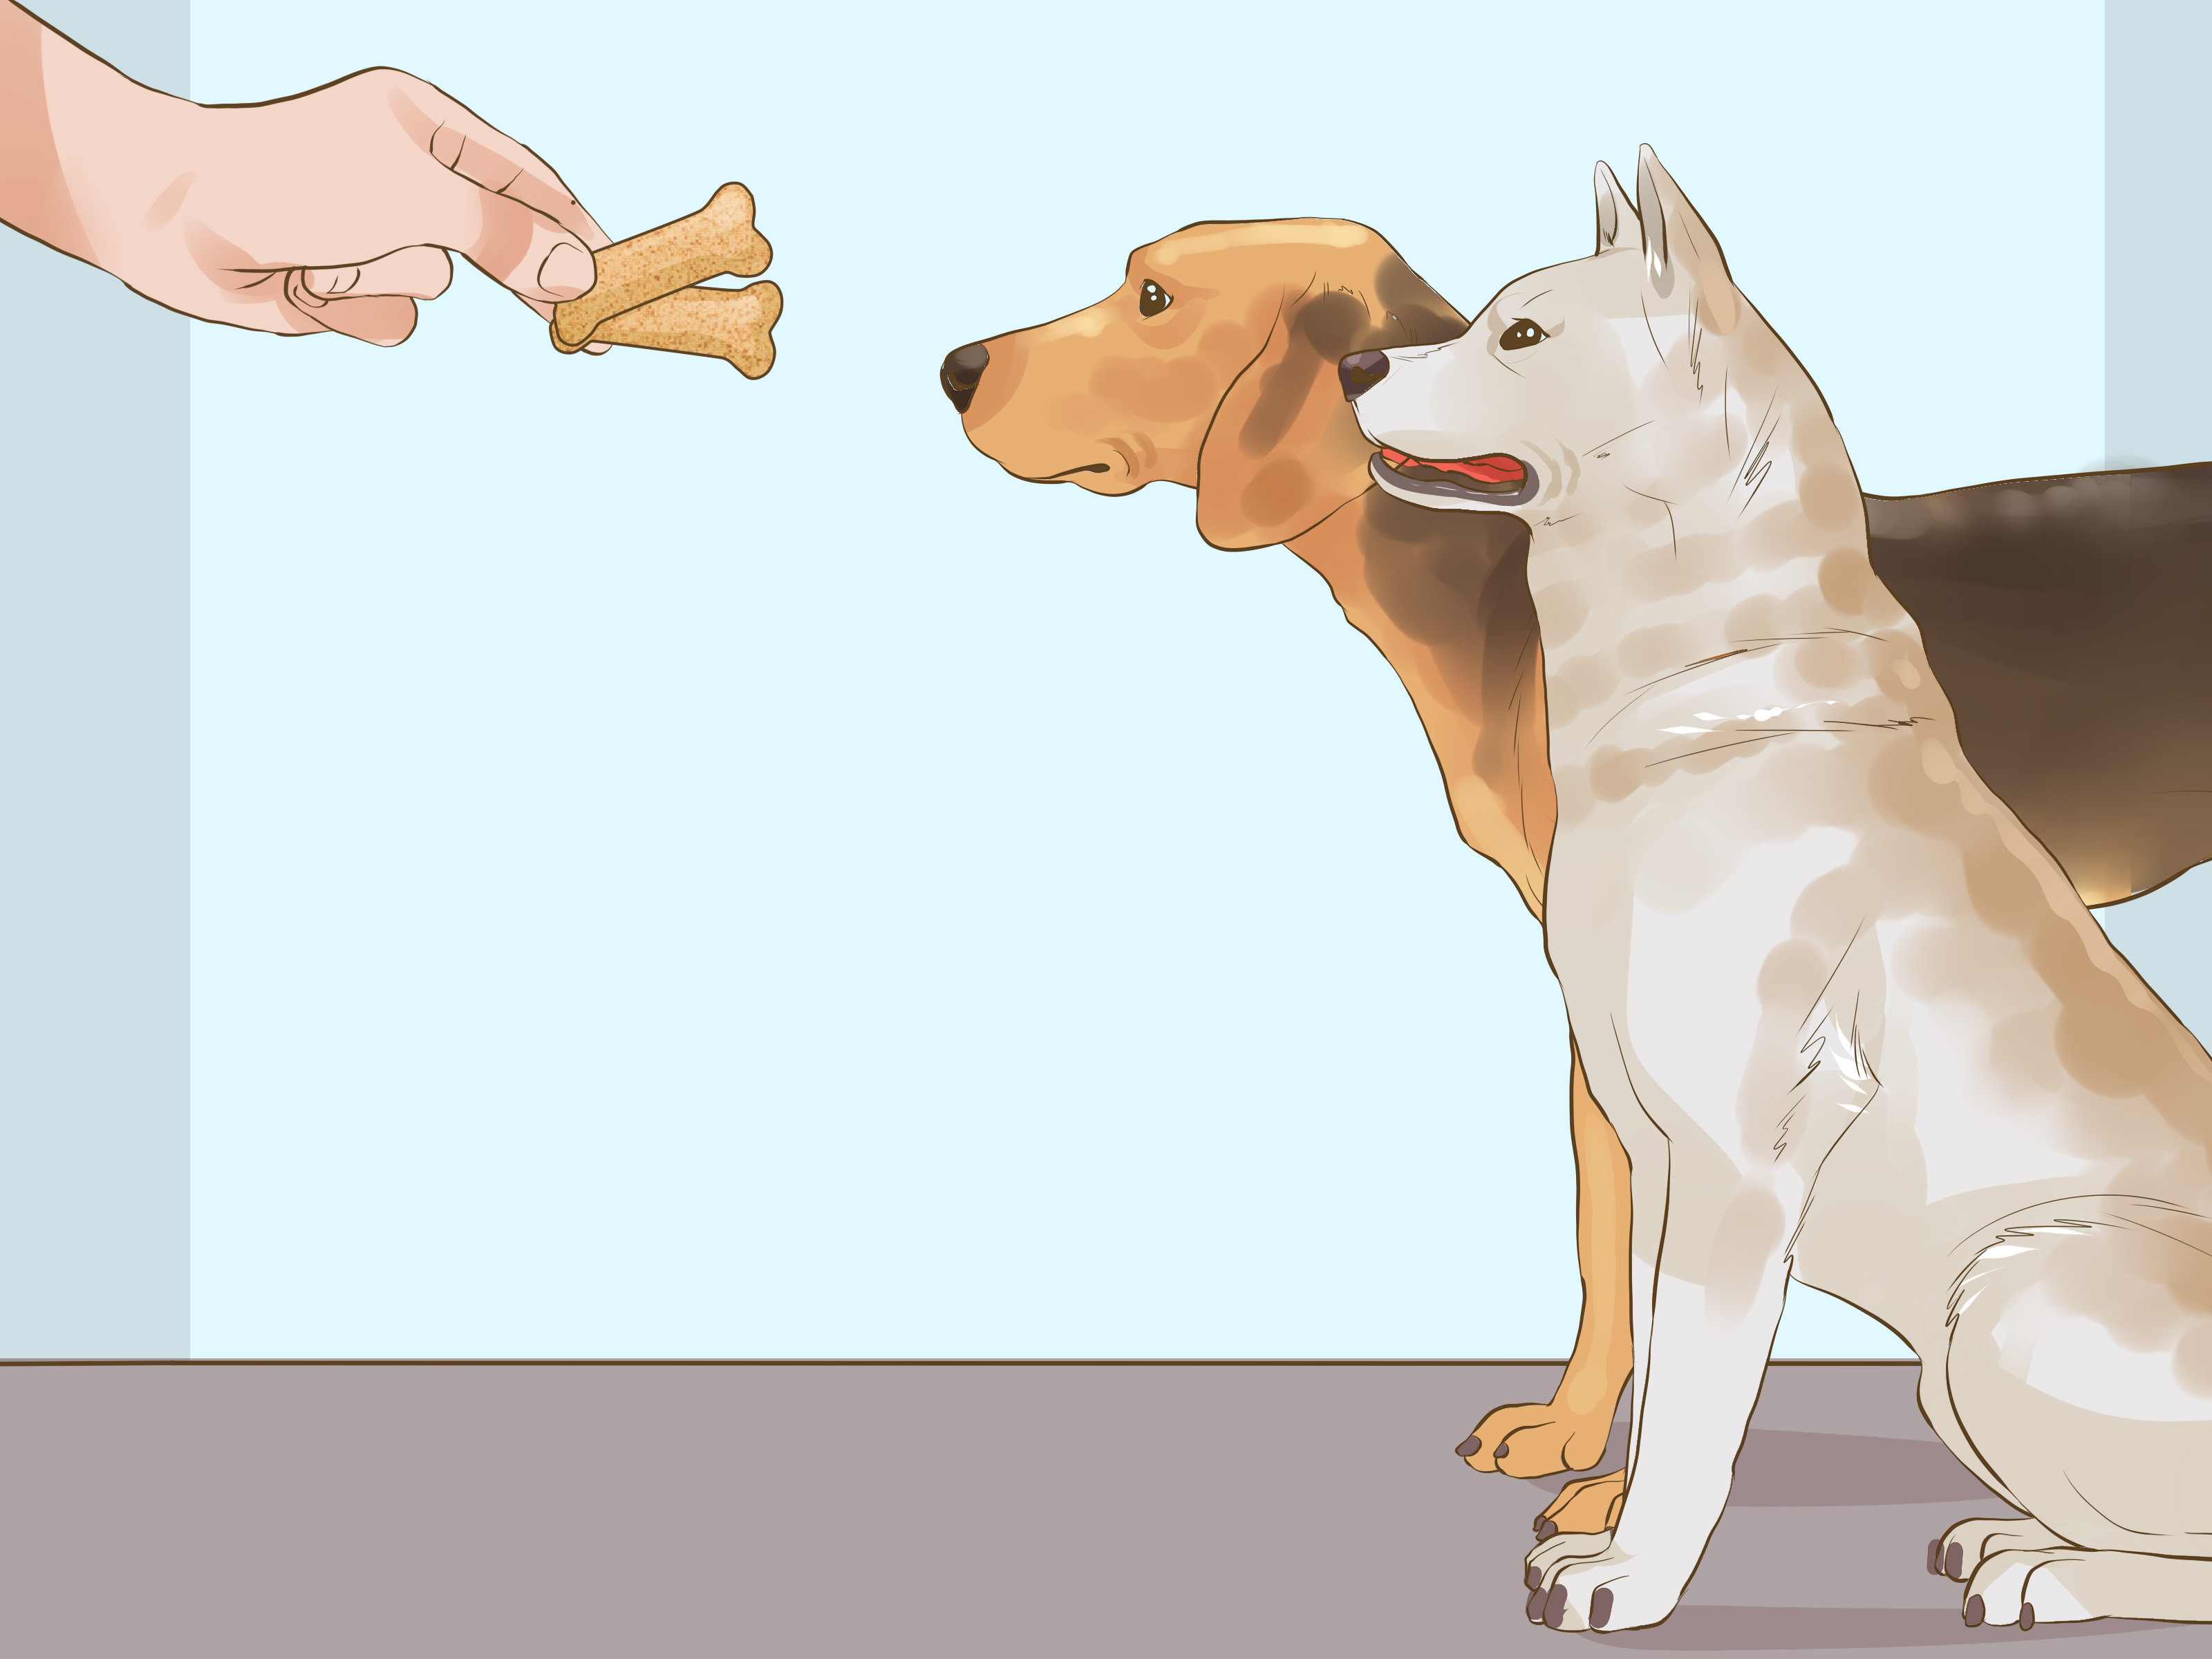 Companion Dog Letter Template - 3 Ways to Get A Panion Dog for An Existing Dog Wikihow